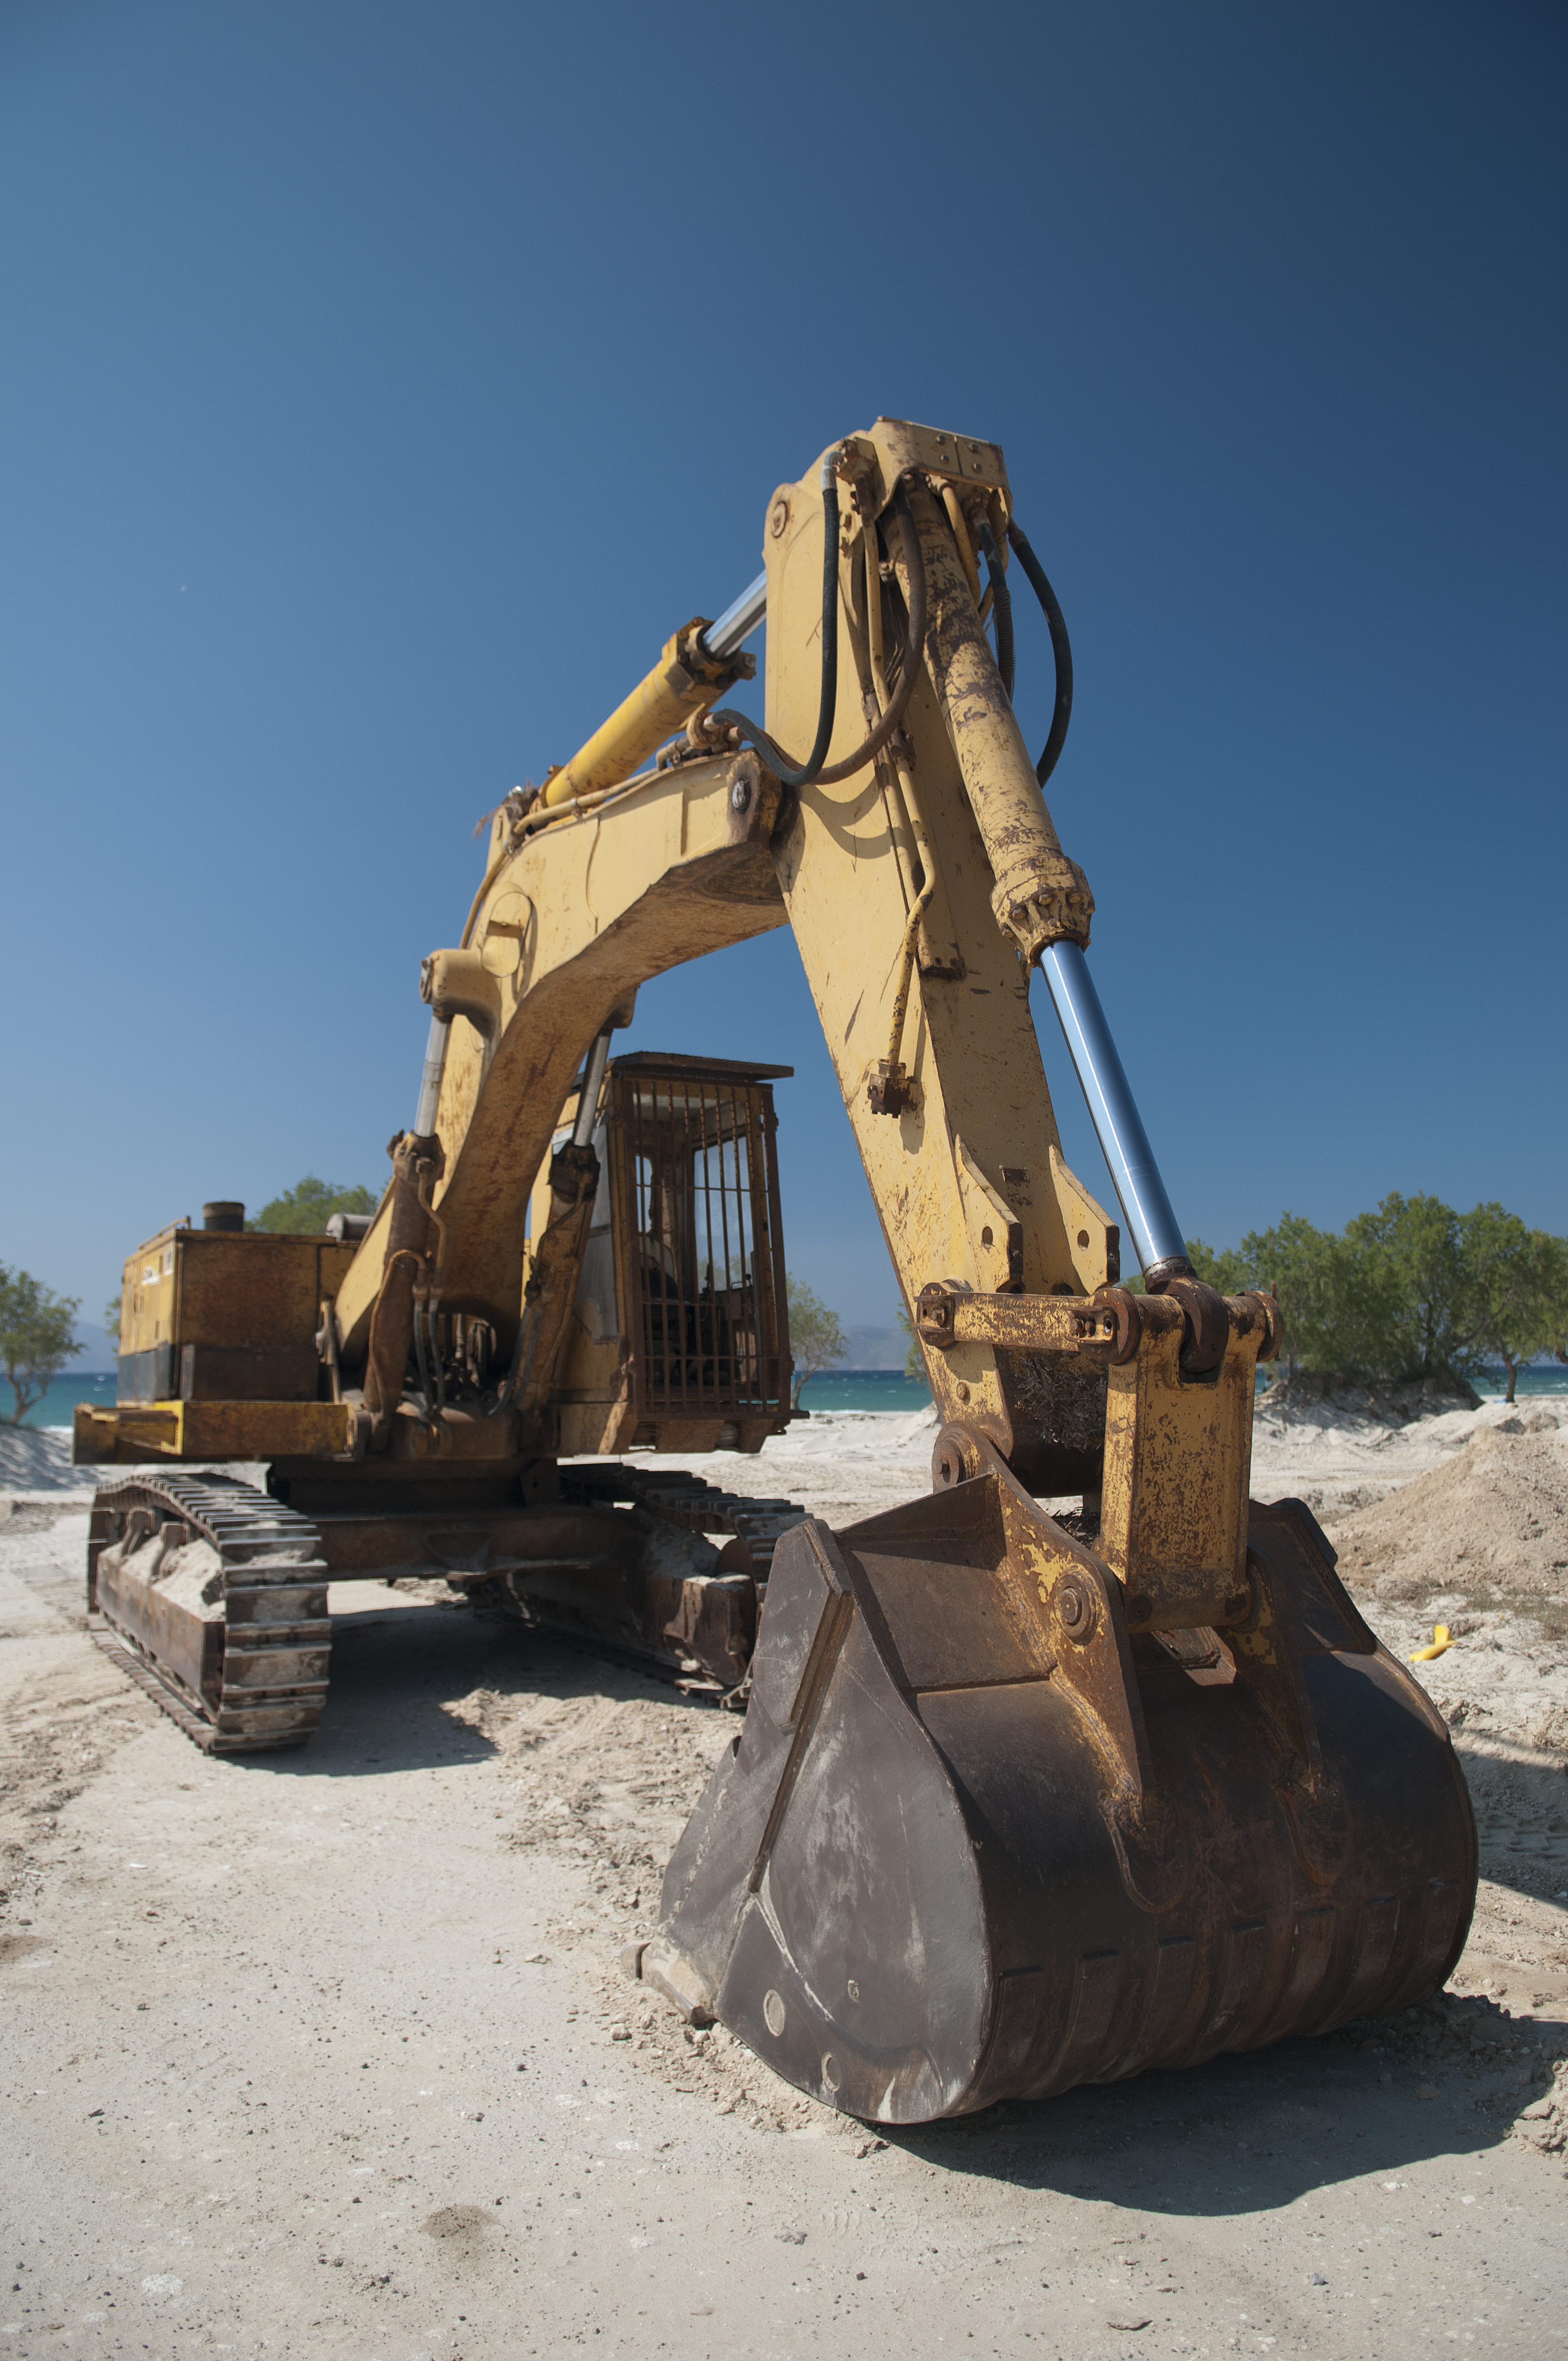 view of heavy equipment - photo #20